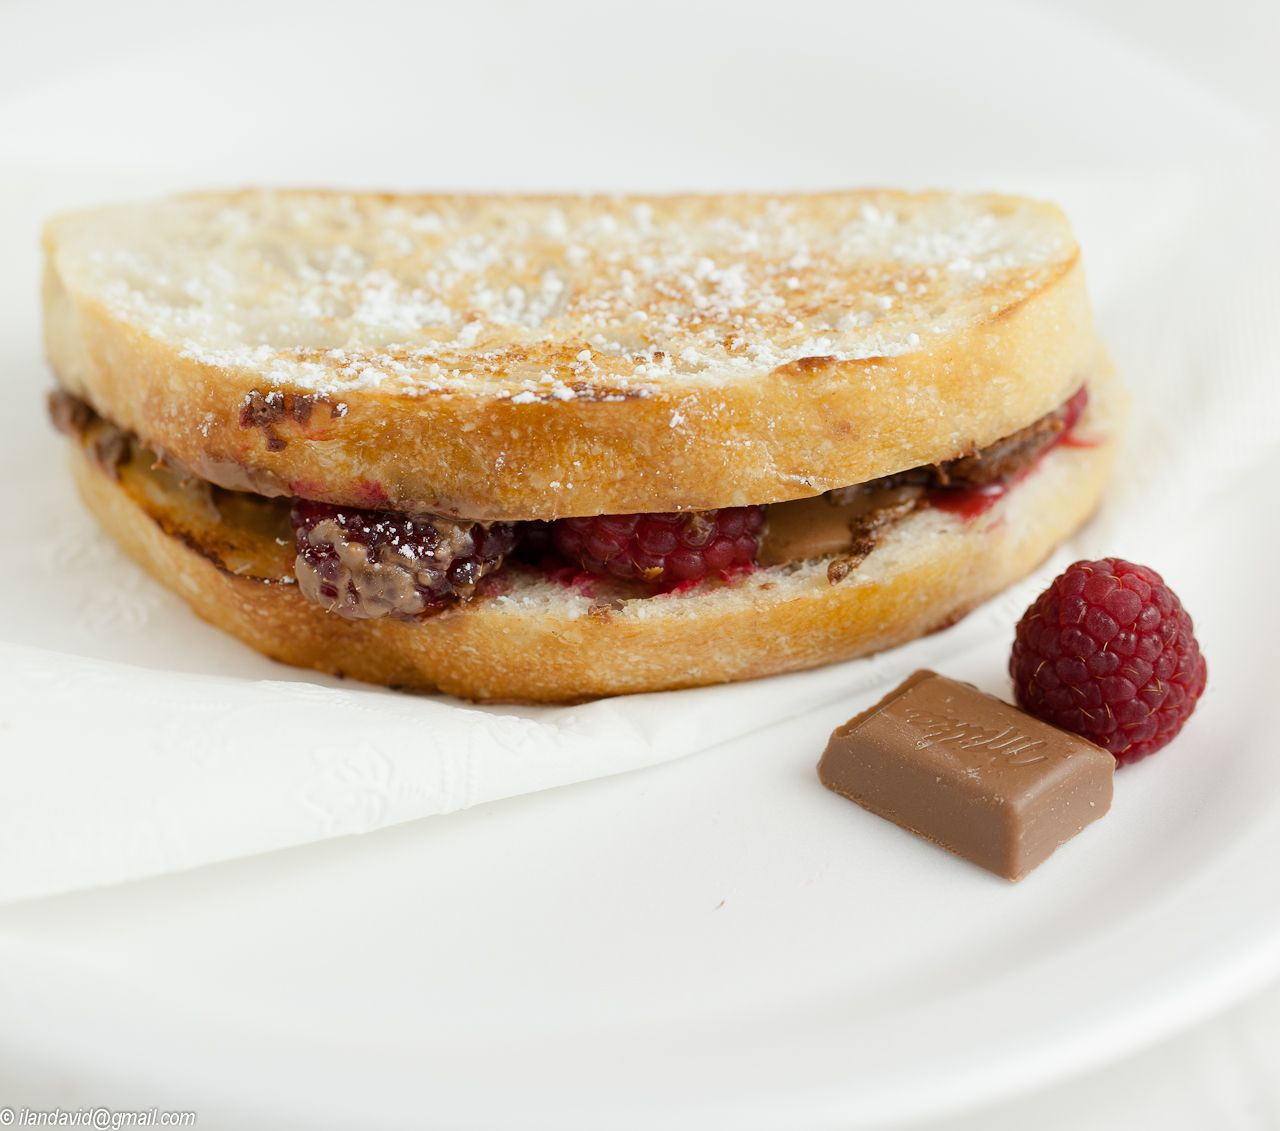 Grilled Chocolate and Raspberry Sandwich | savory | Pinterest